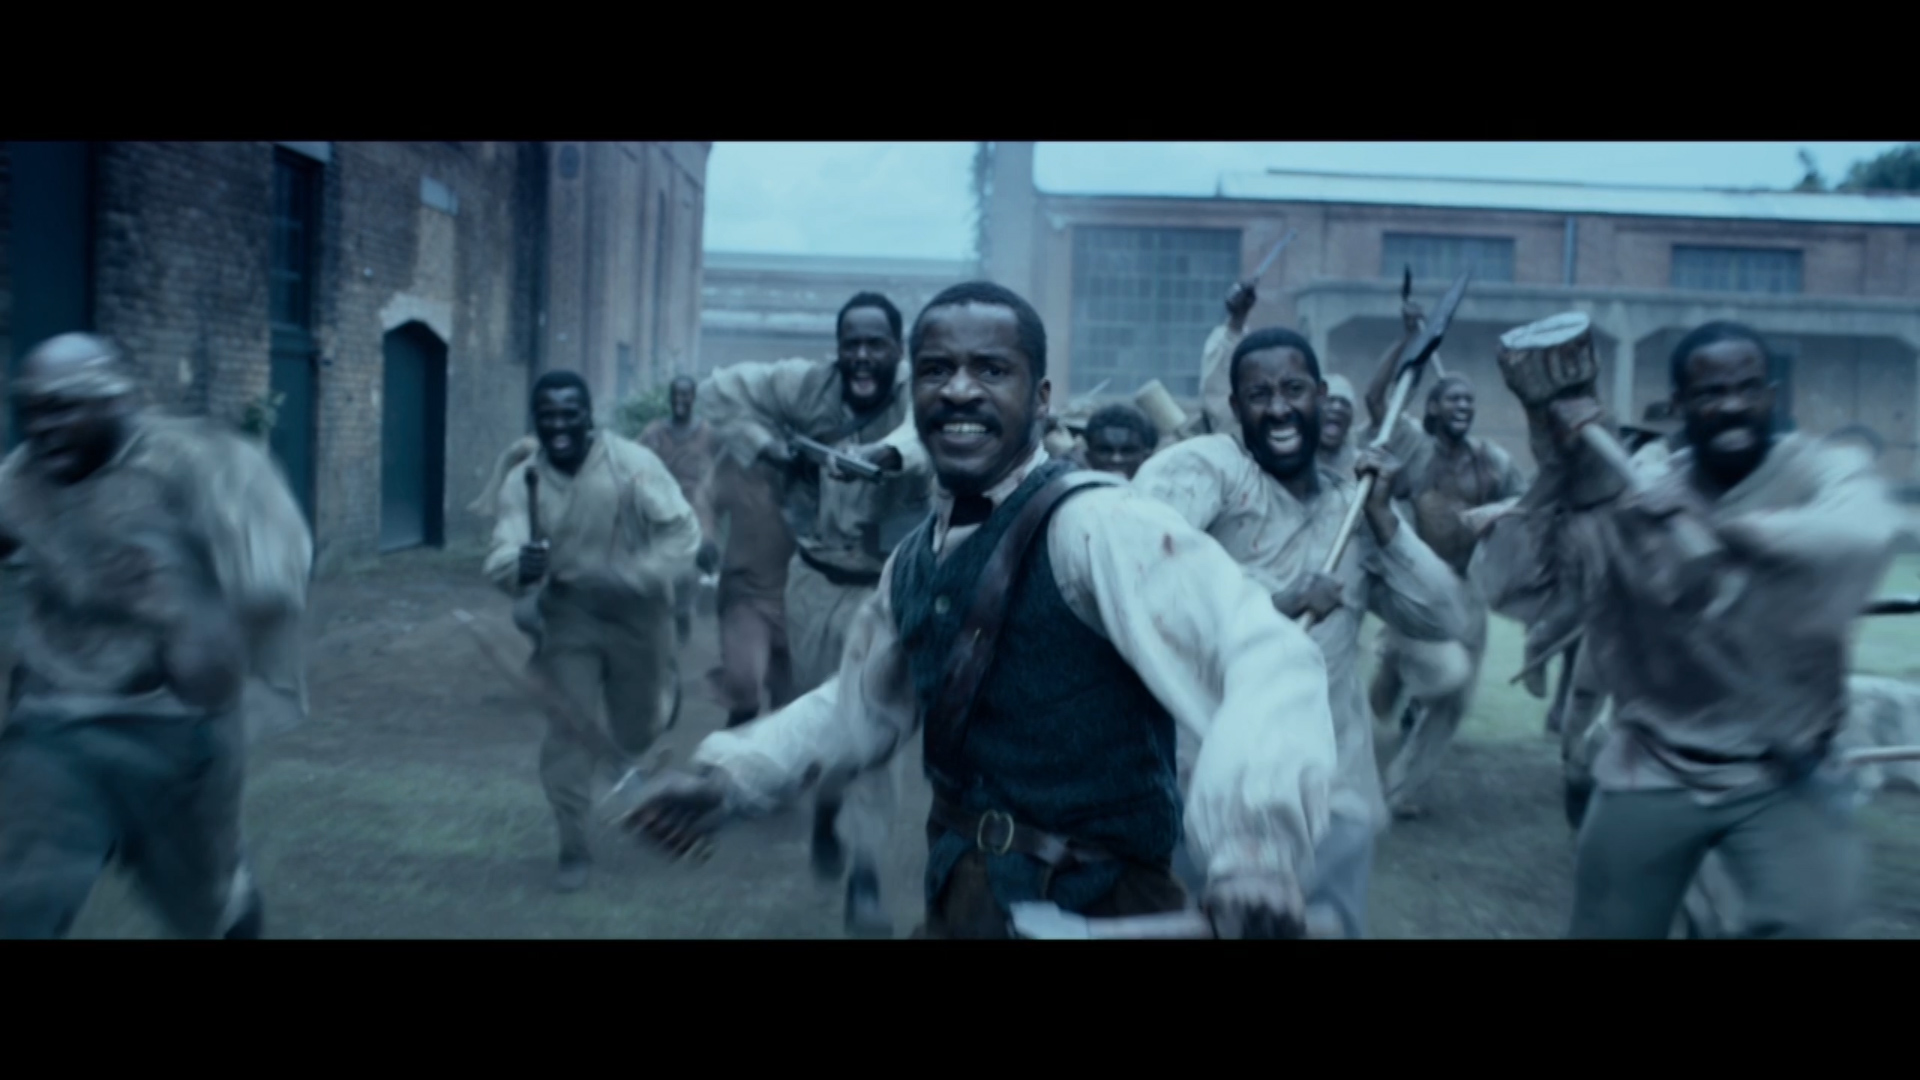 'The Birth of a Nation' is based on the true story of Nat Turner, a slave and preacher who led a rebellion in antebellum Virginia.